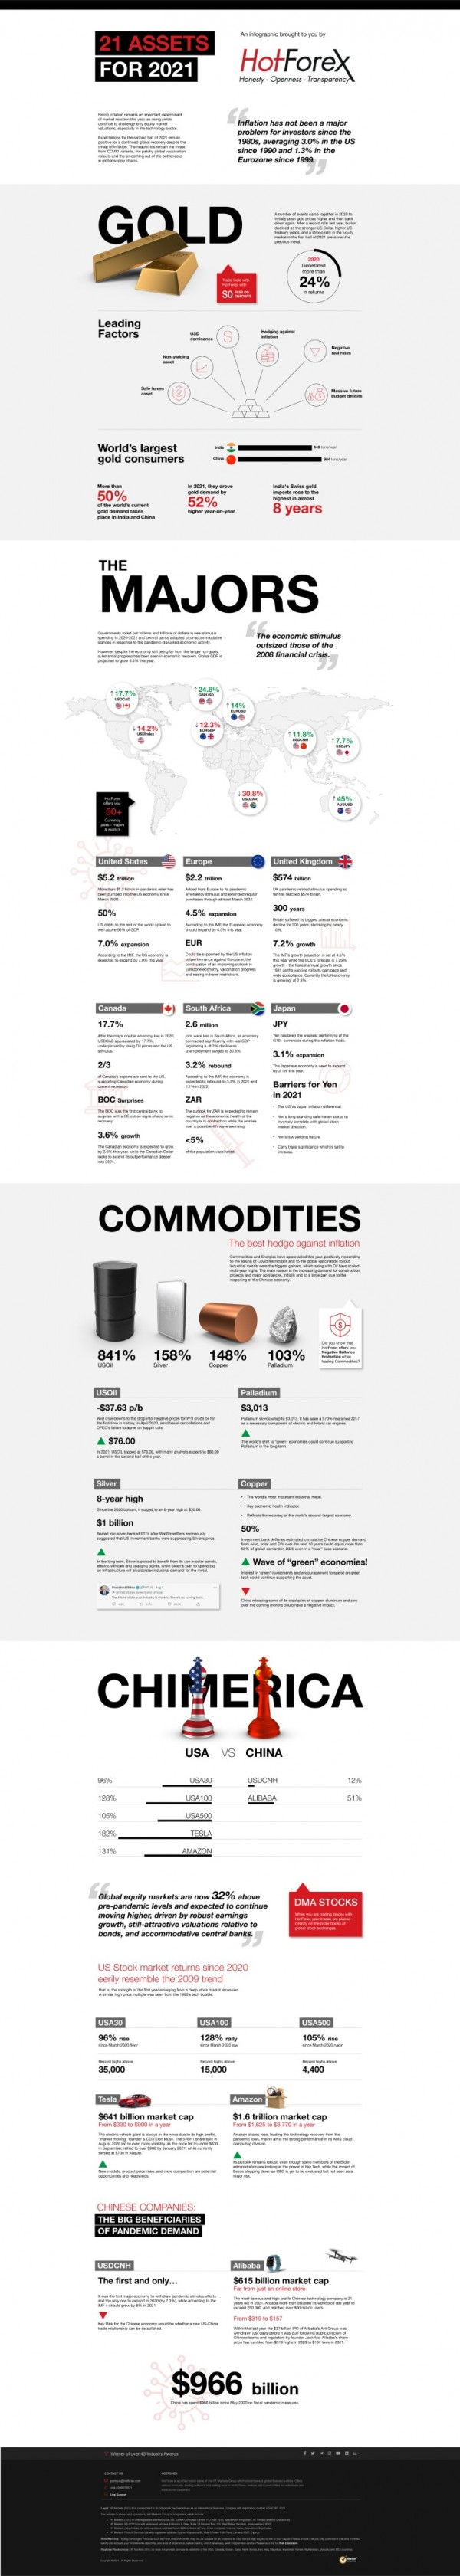 hot forex infographic